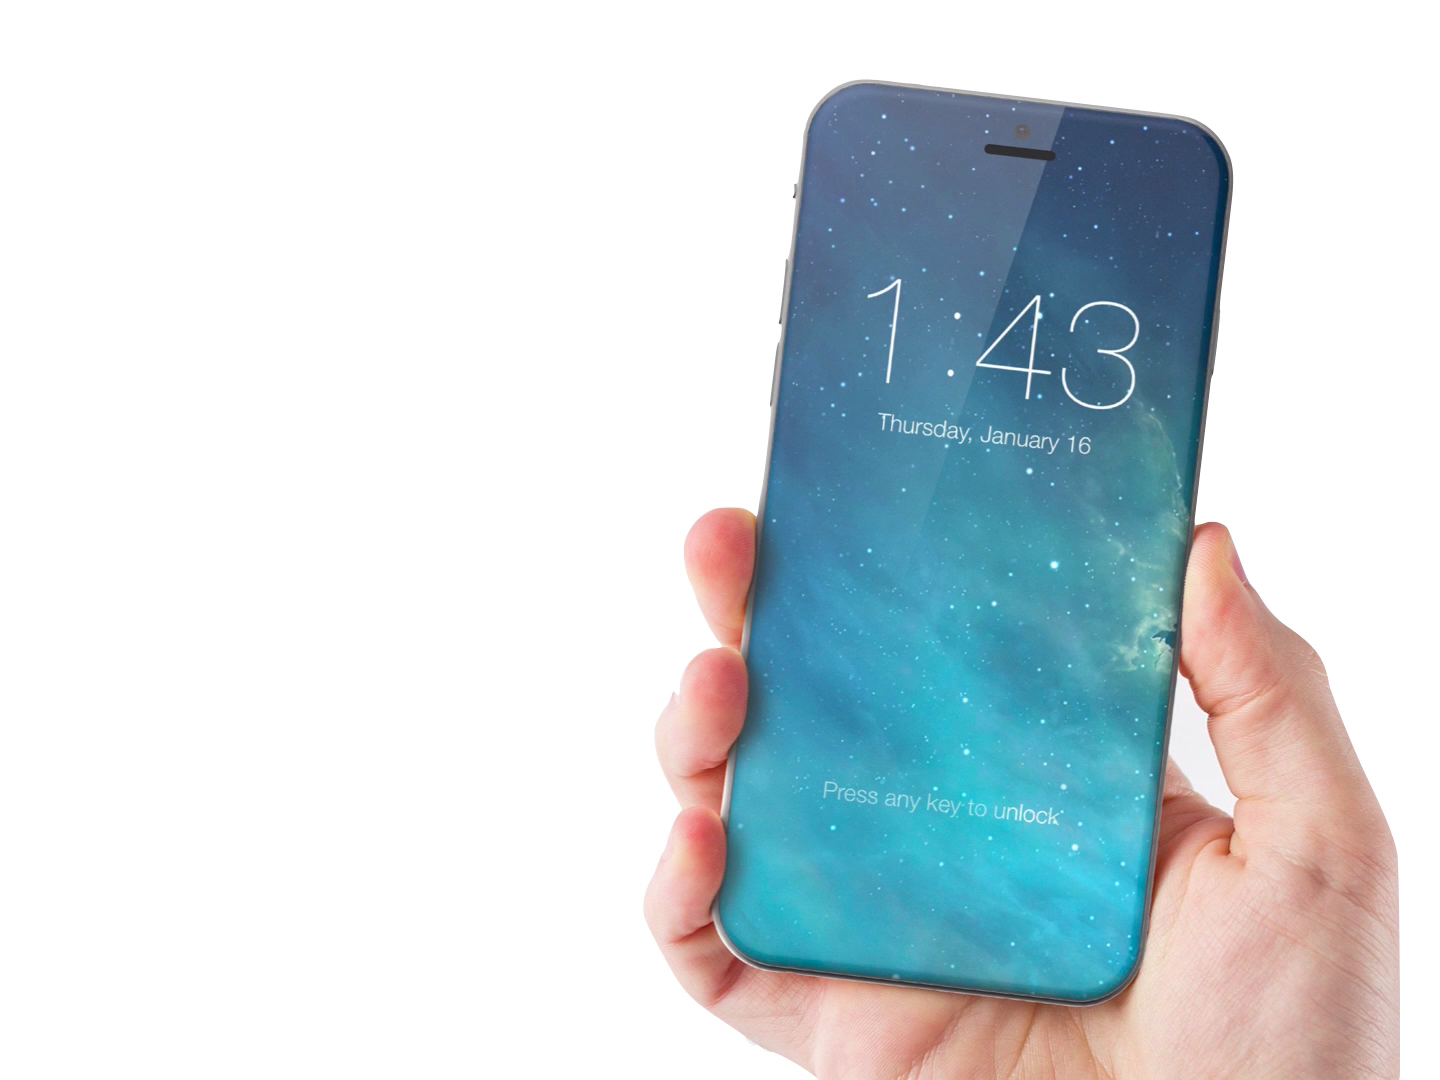 mockup of the 2017 iPhone, based on early rumors 600 01